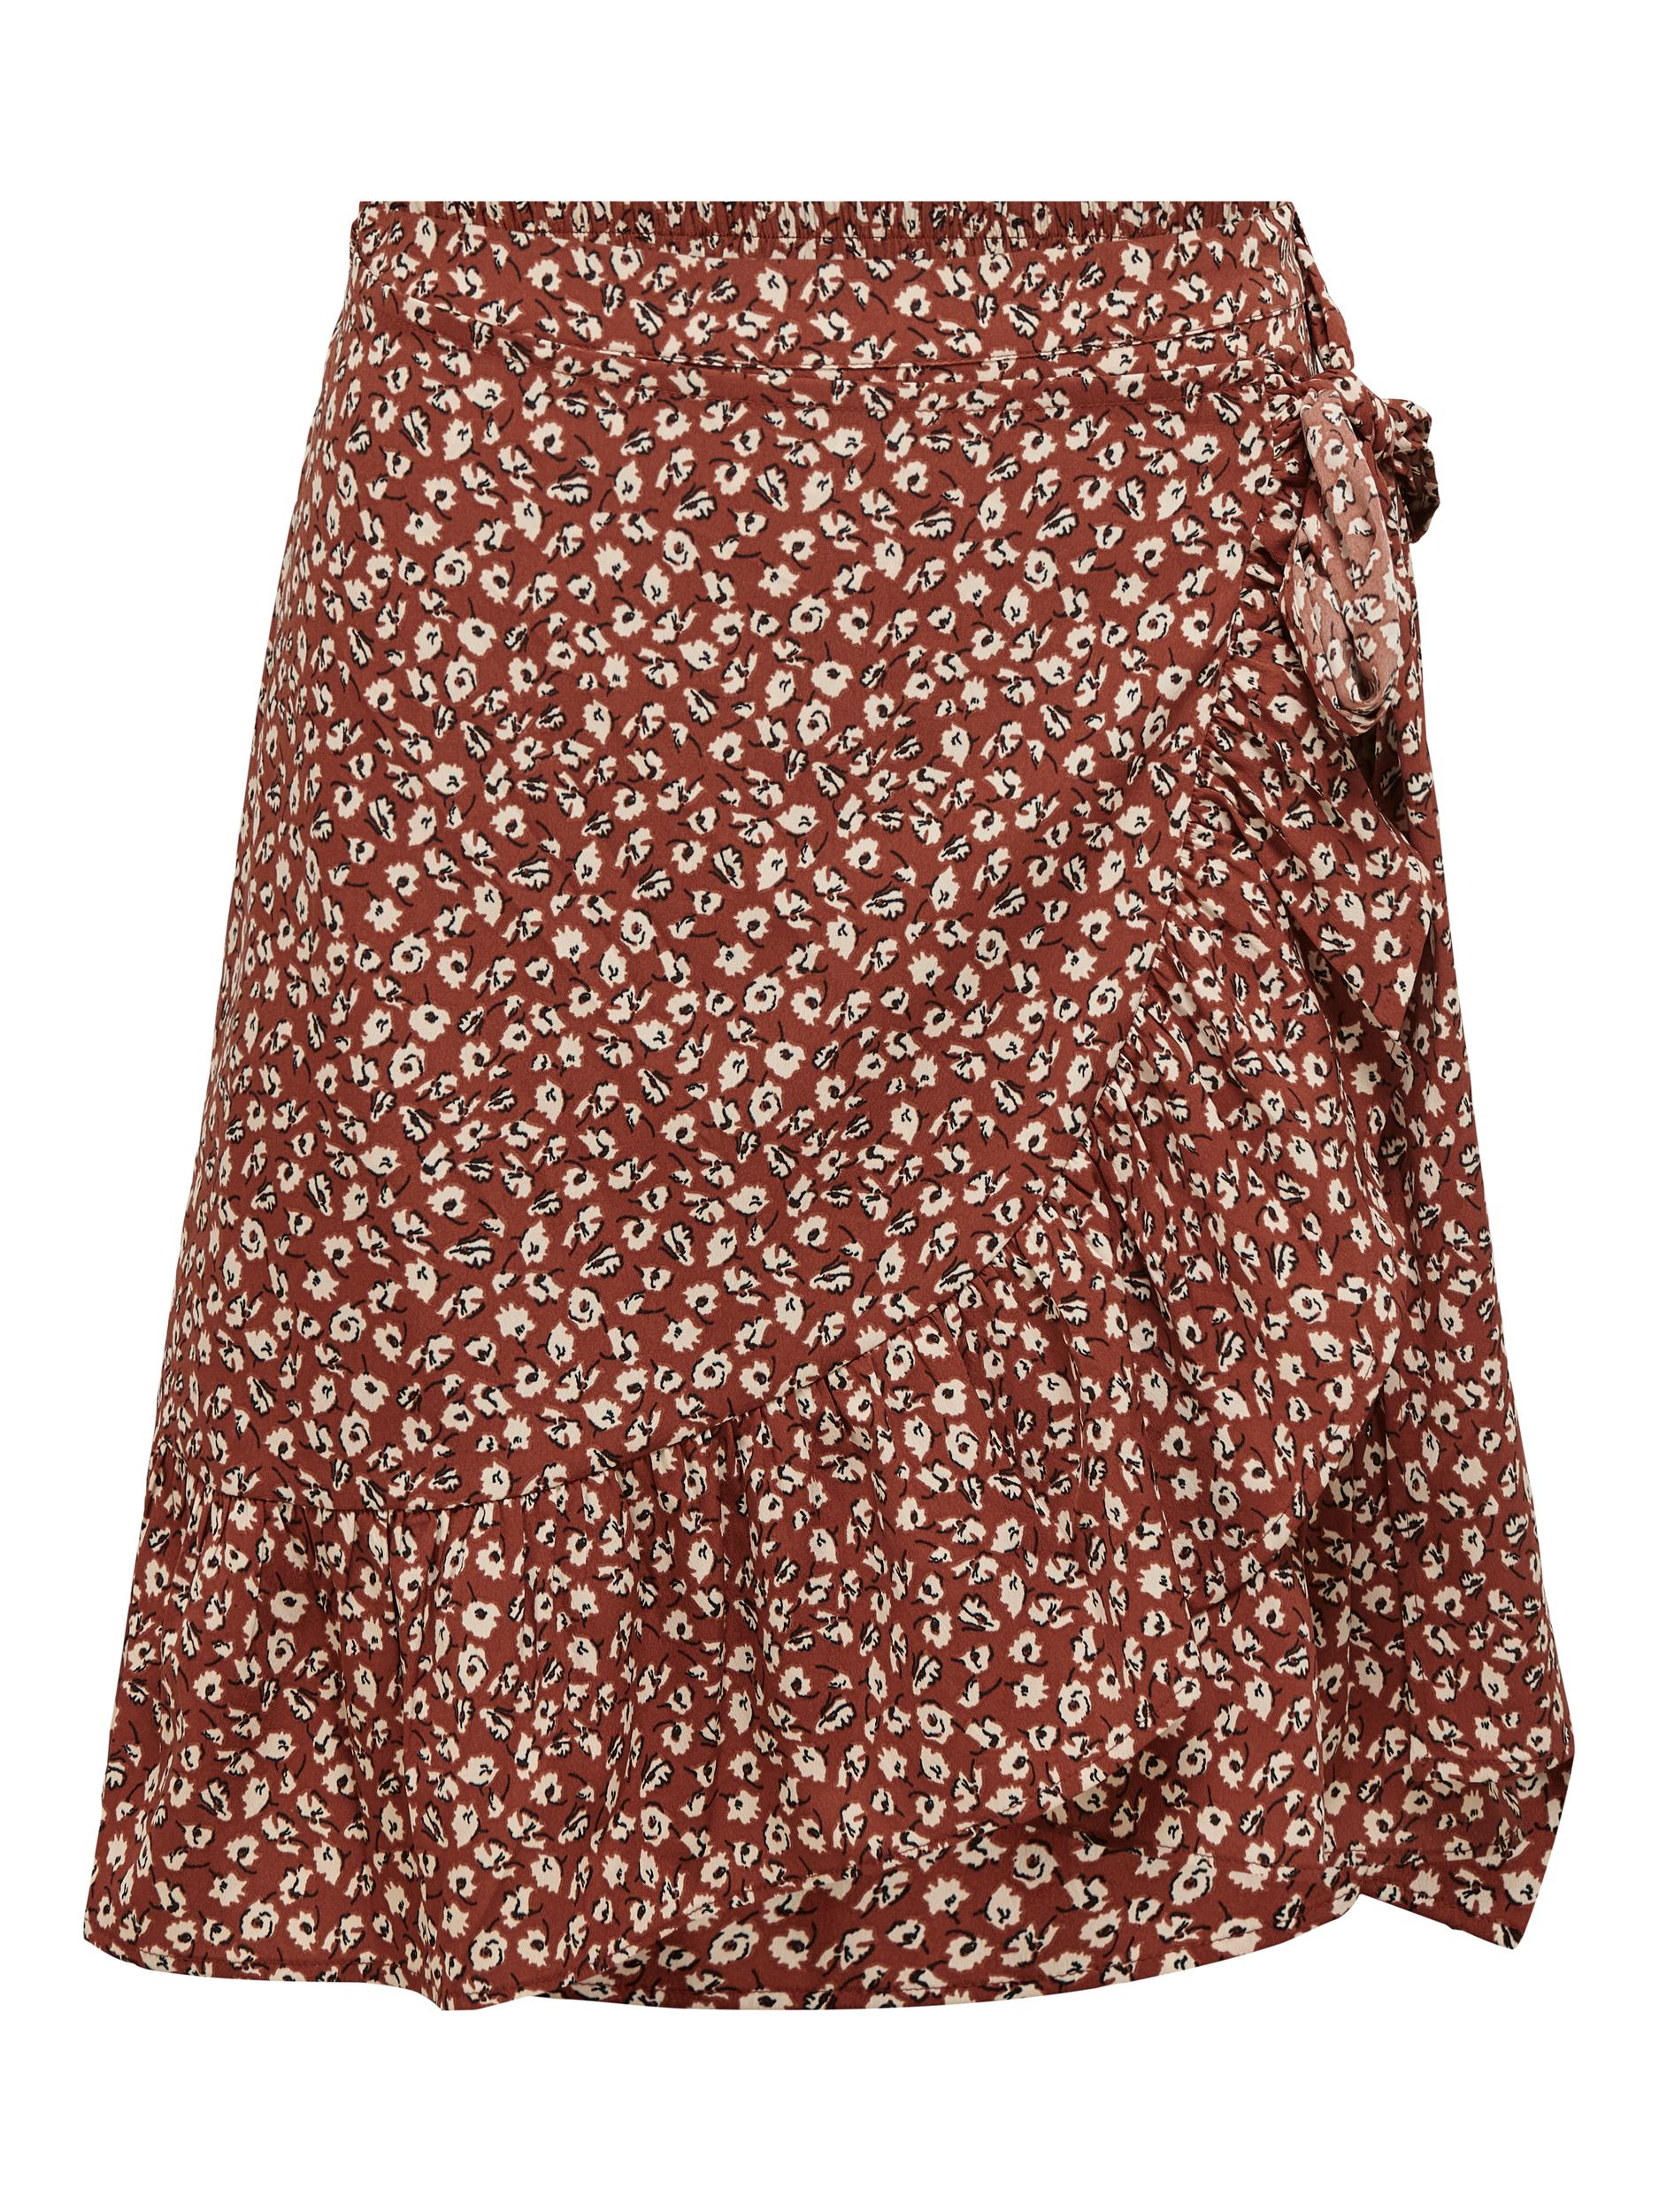 ONLY Olivia Wrap nederdel, henna, x-small